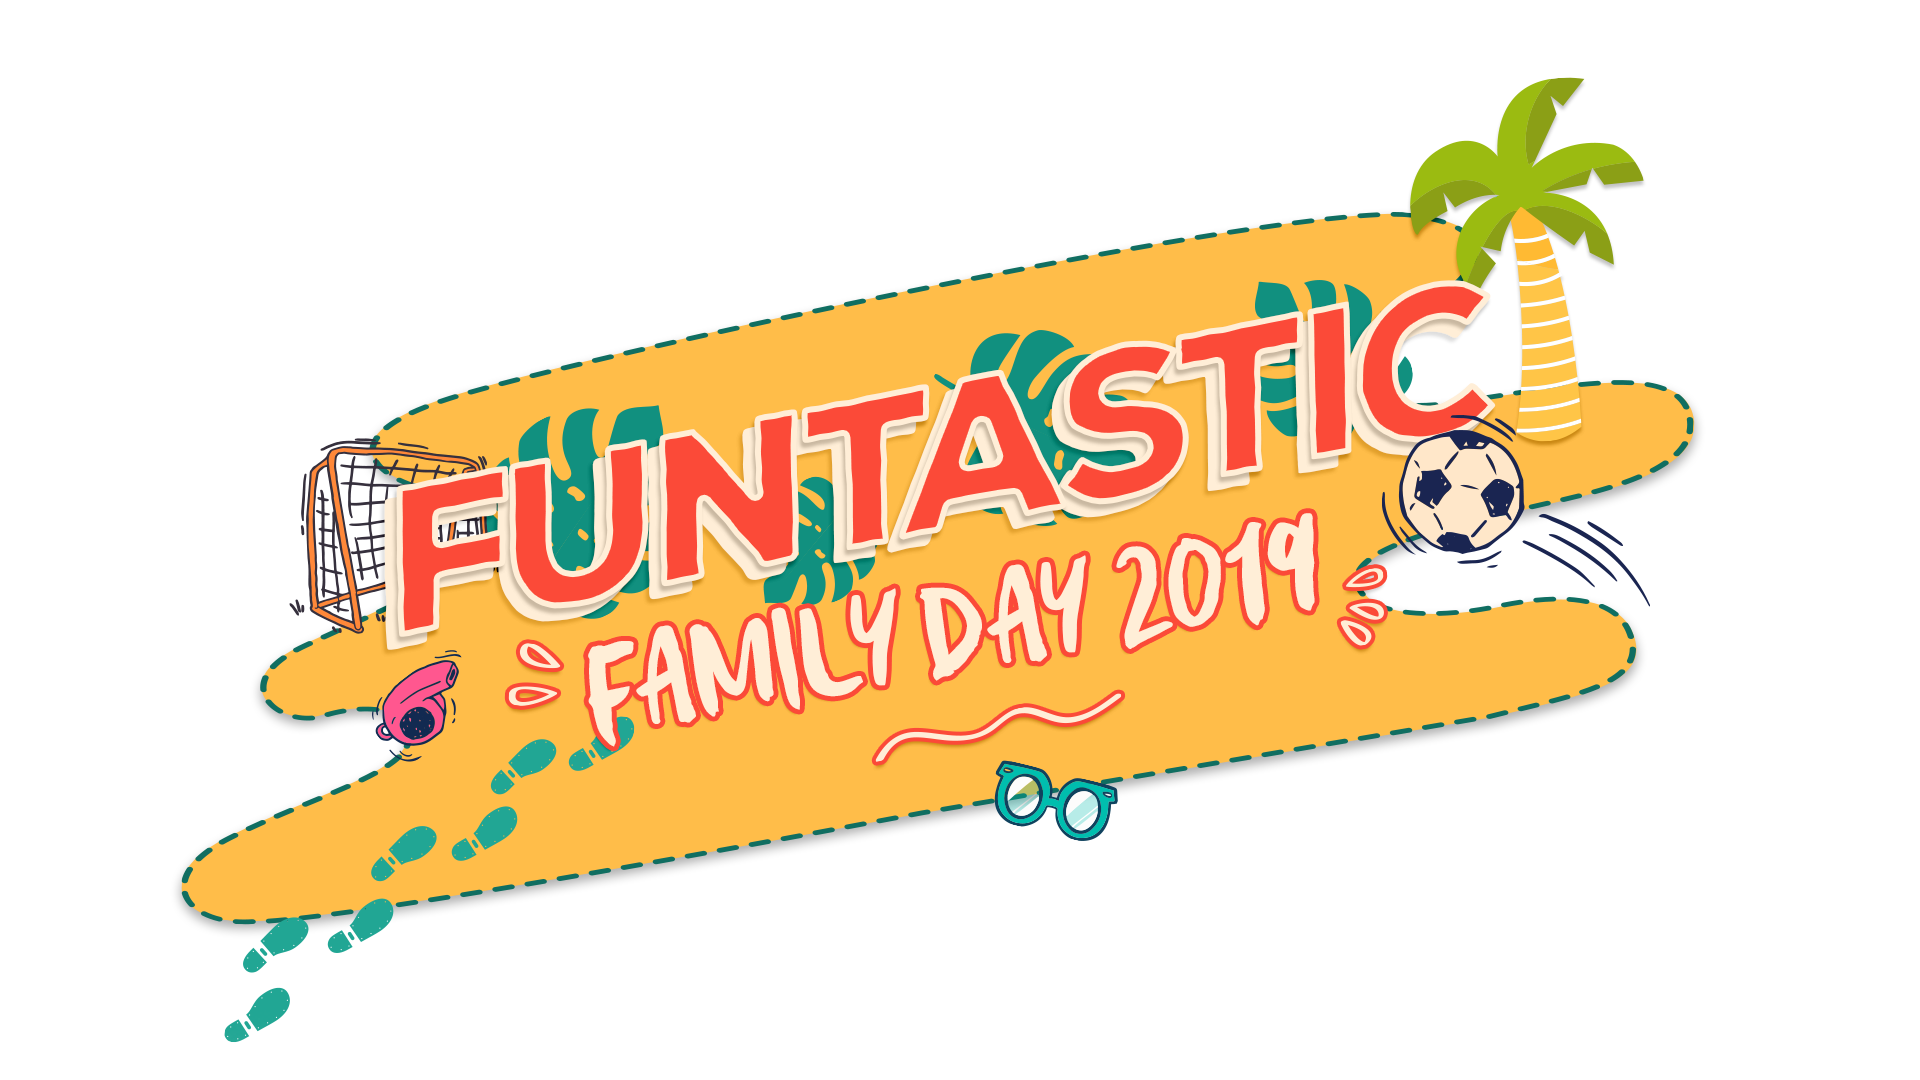 FUNTASTIC FAMILY DAY 2019 Banner Image